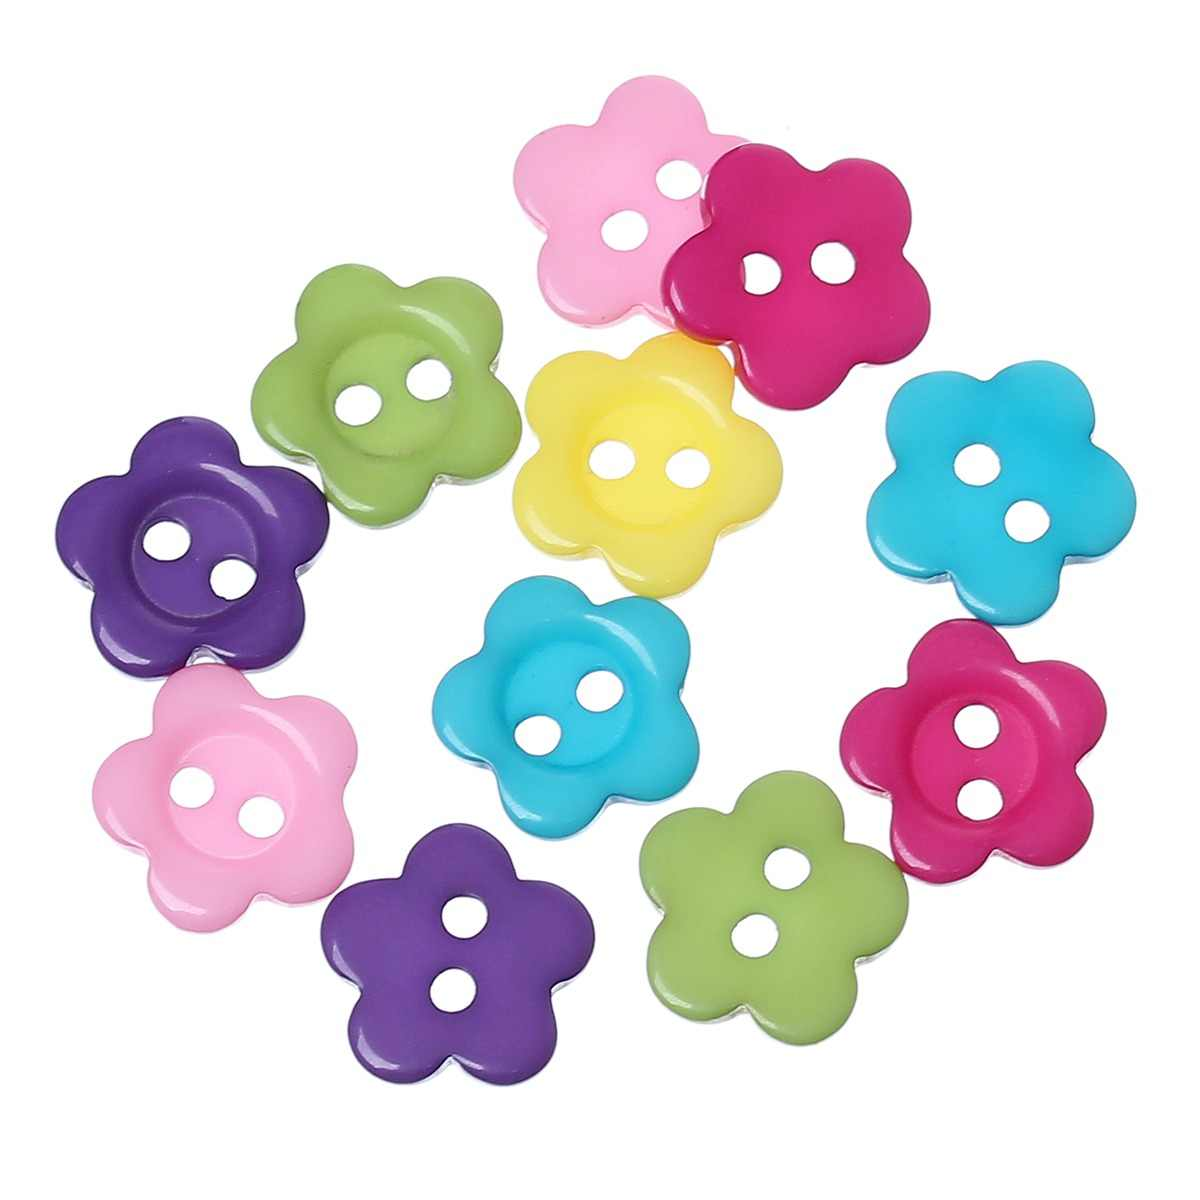 "DoreenBeads Resin Sewing Button Scrapbooking DIY Decoration Flower Mixed Two Holes 10.5mm( 3/8"") x 10mm( 3/8""), 30 PCs 2018 new"